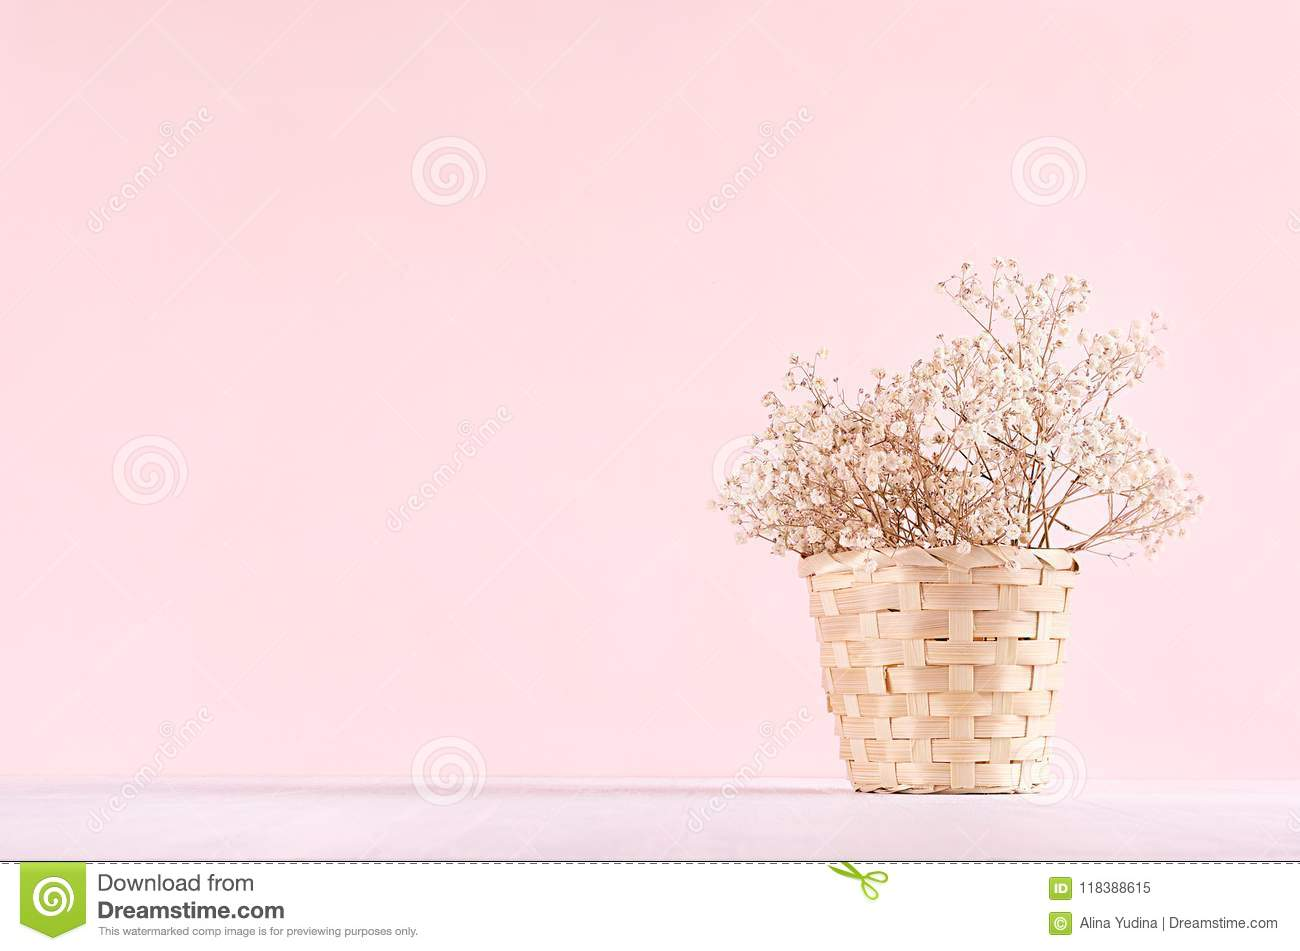 Elegance home eco decor - white dried flowers bouquet in bucket on white table and fashion pink background.